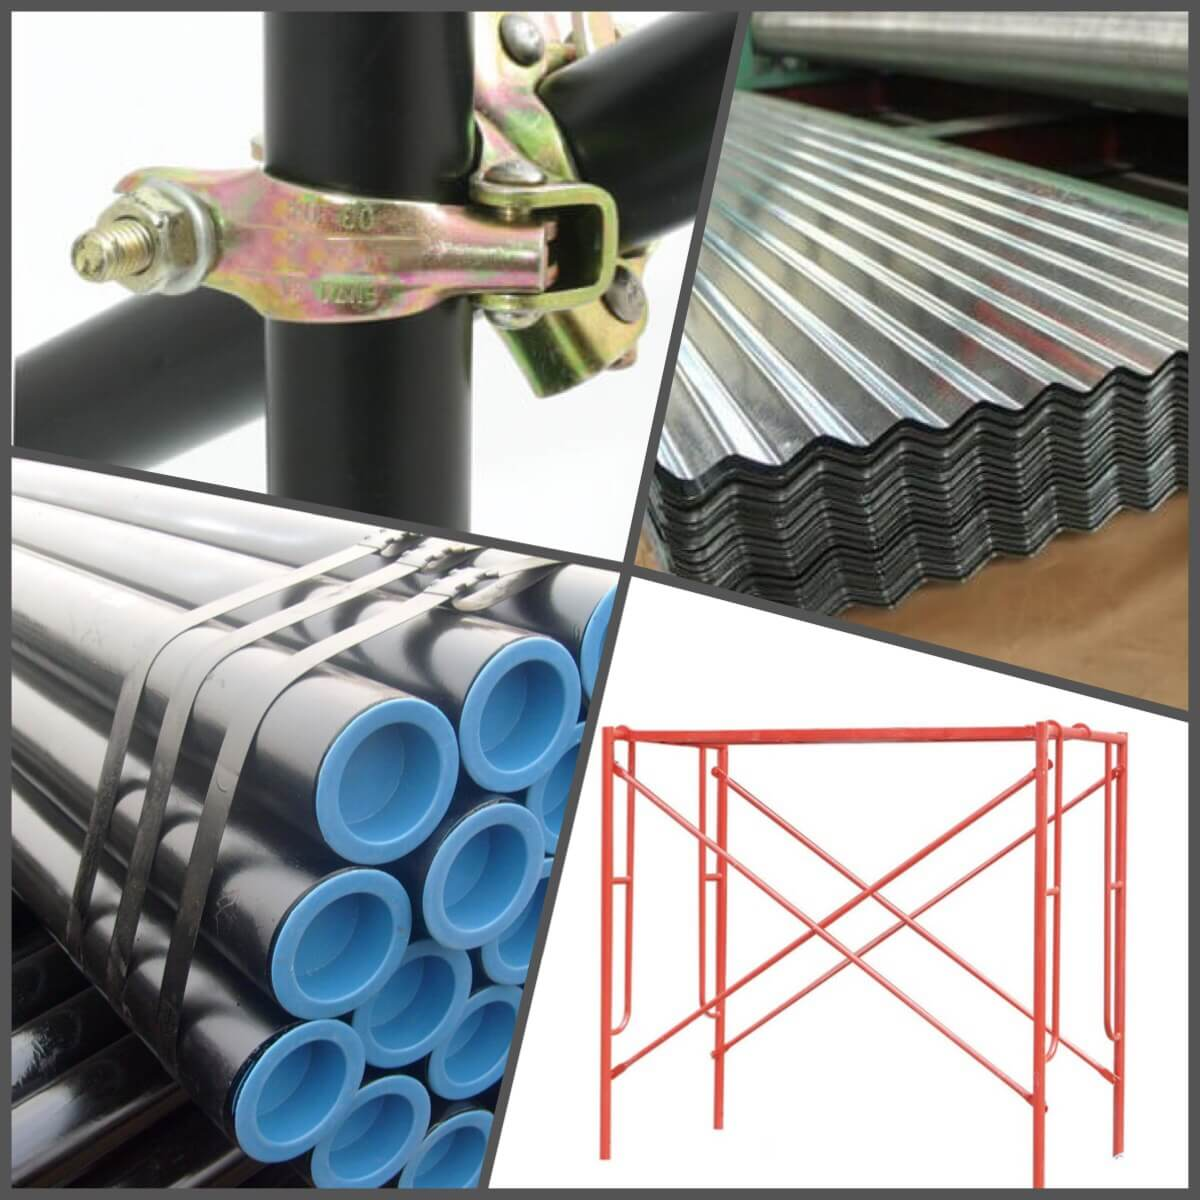 Scaffolding, Corrugated Sheets, Steel Pipes